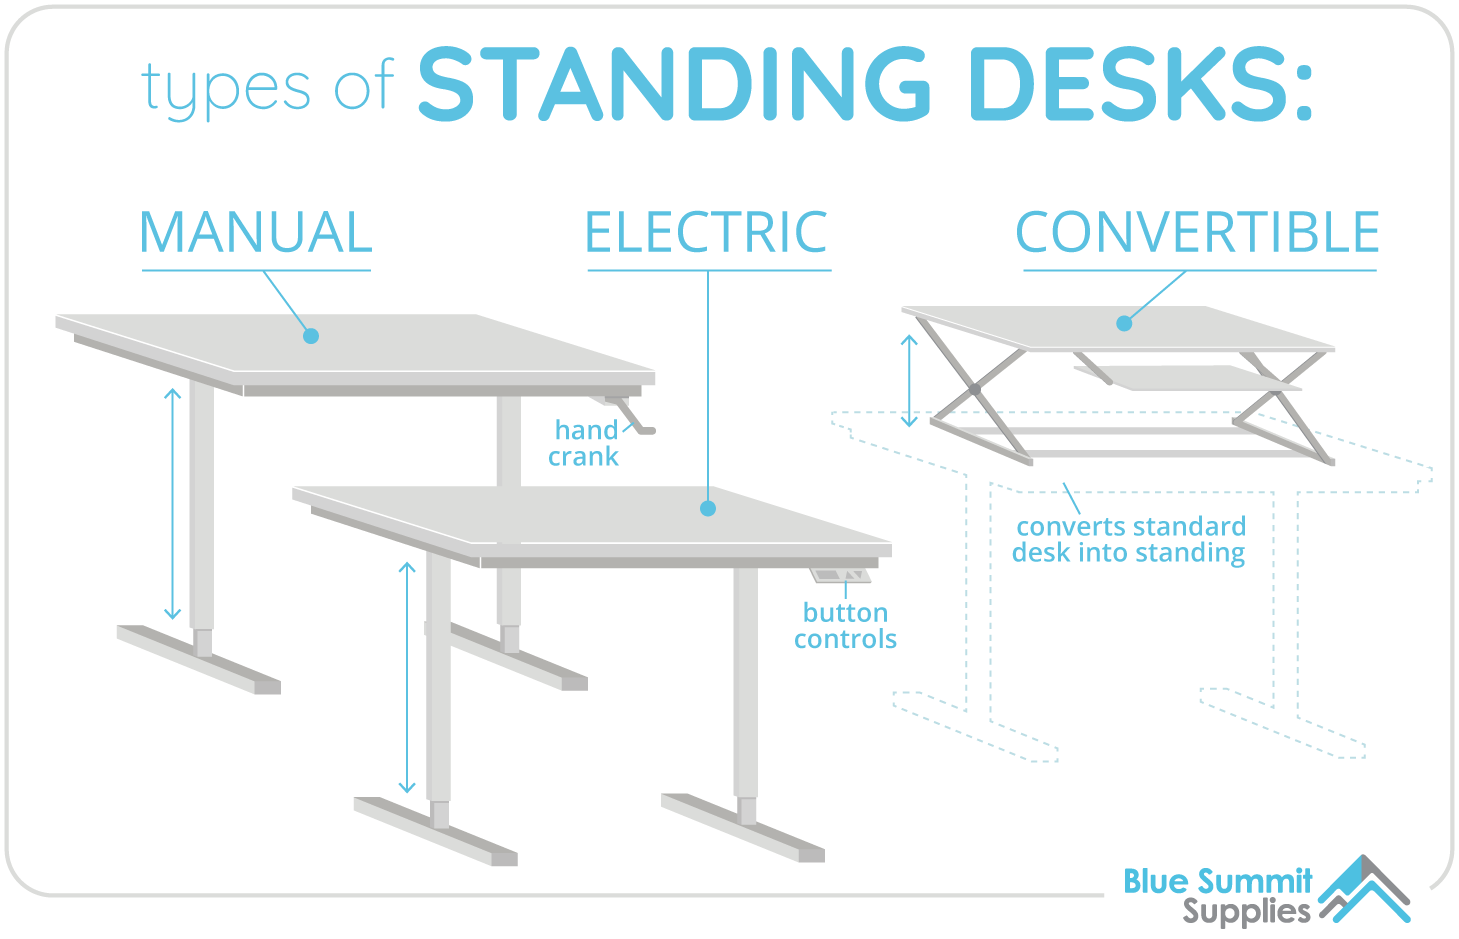 Types of standing desks: Manual, electronic, and convertible